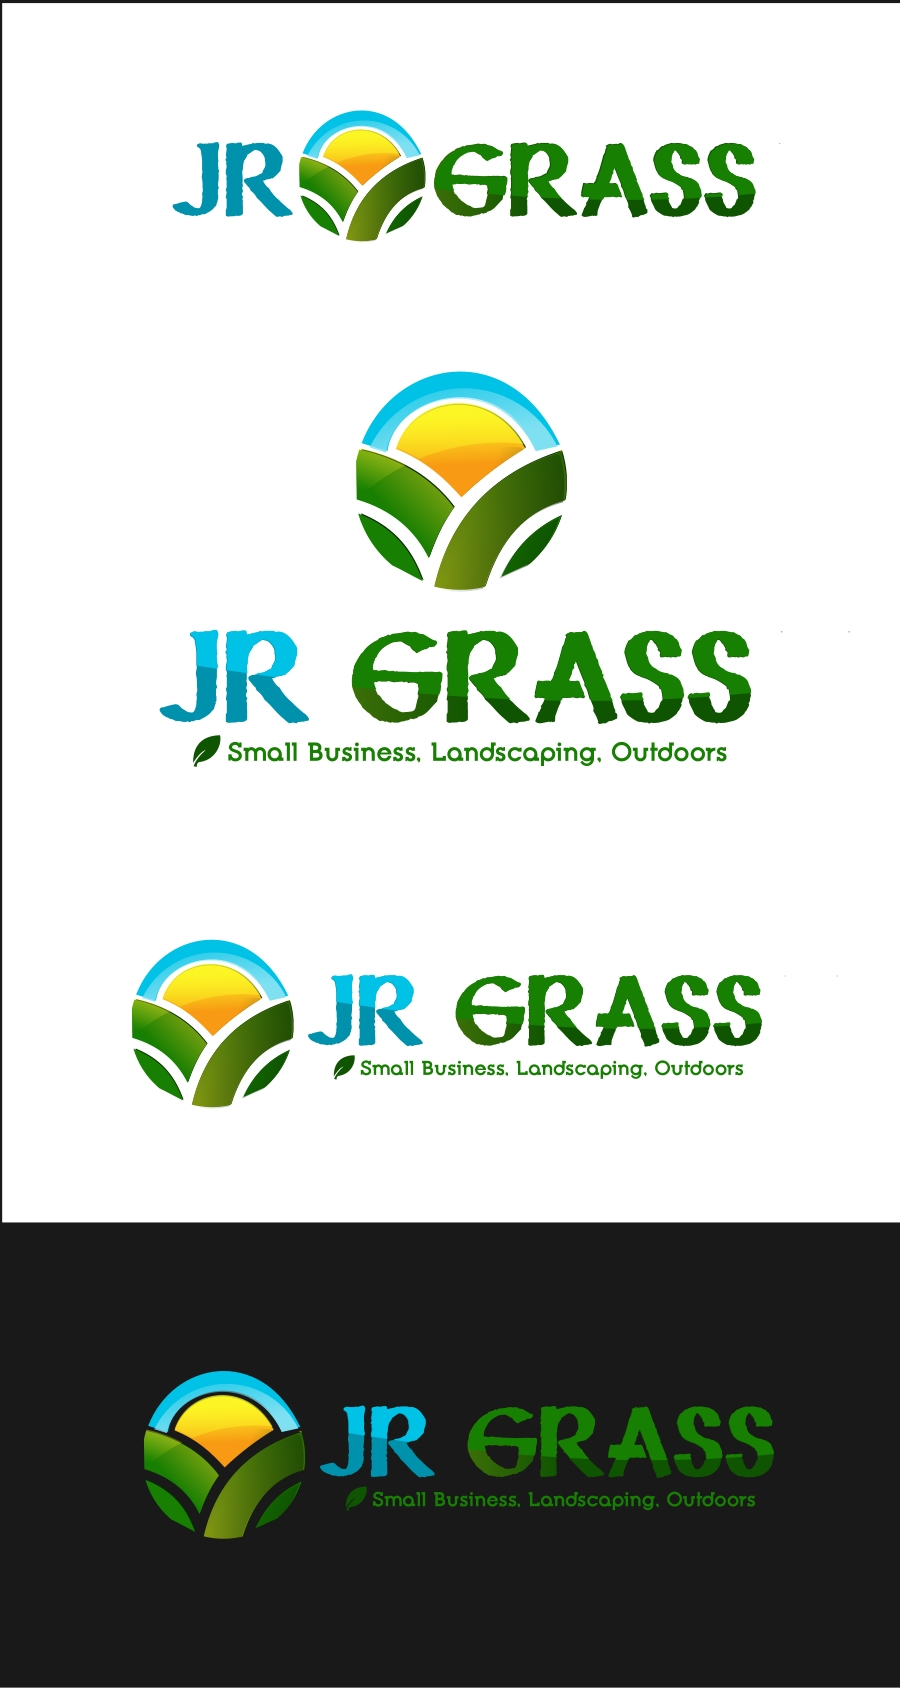 Logo Design by Private User - Entry No. 22 in the Logo Design Contest Inspiring Logo Design for JR Grass.